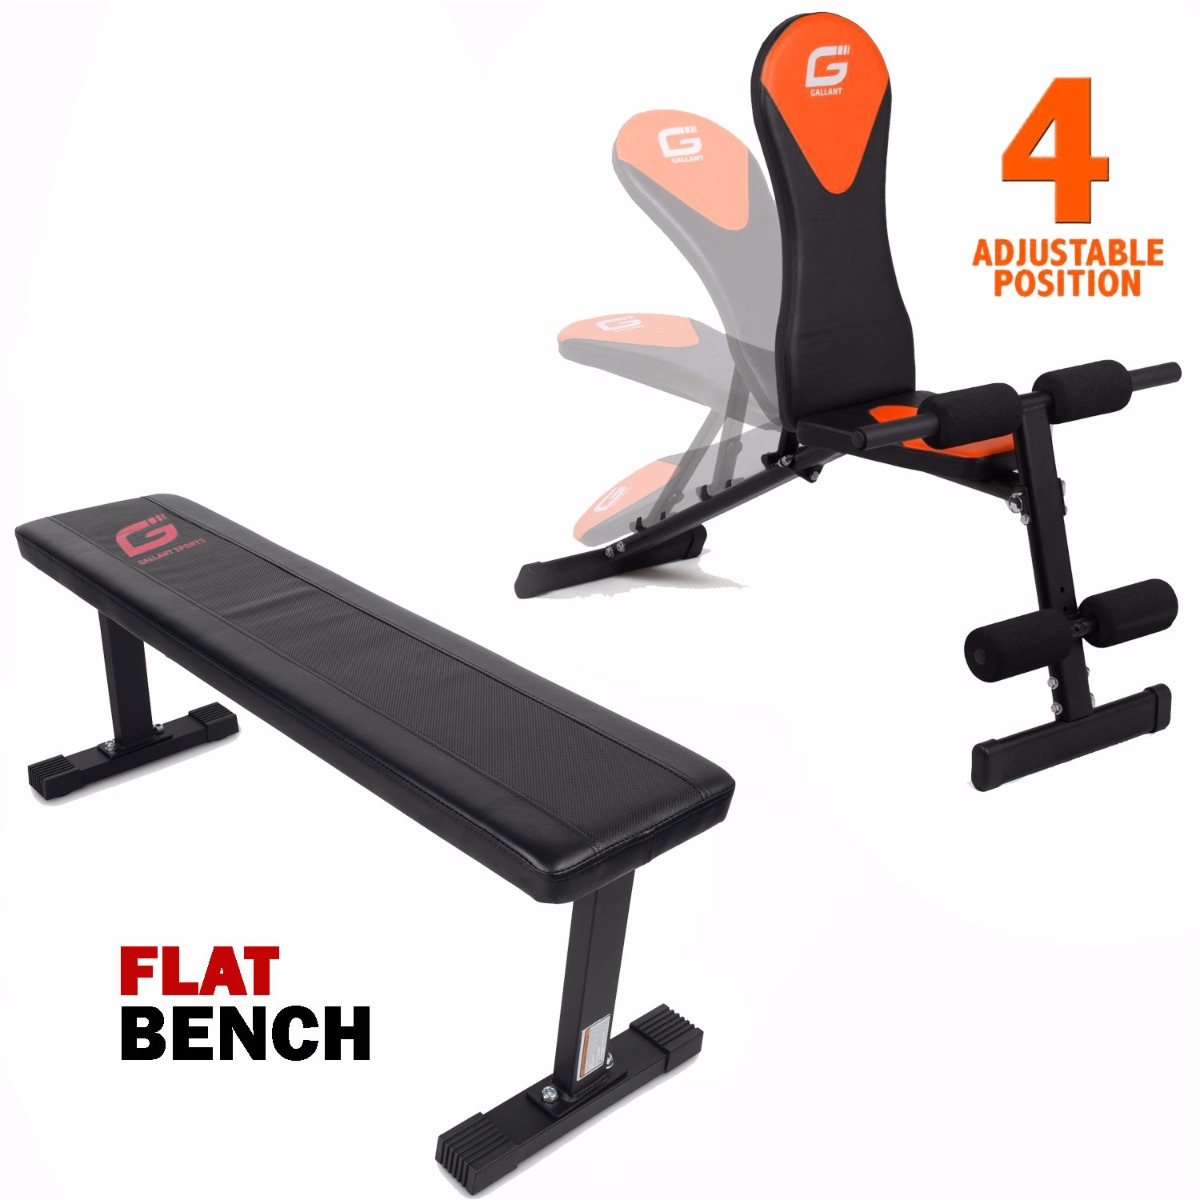 flatbench dumbbell online exercise bench flat at benches shop rack bodymax new with